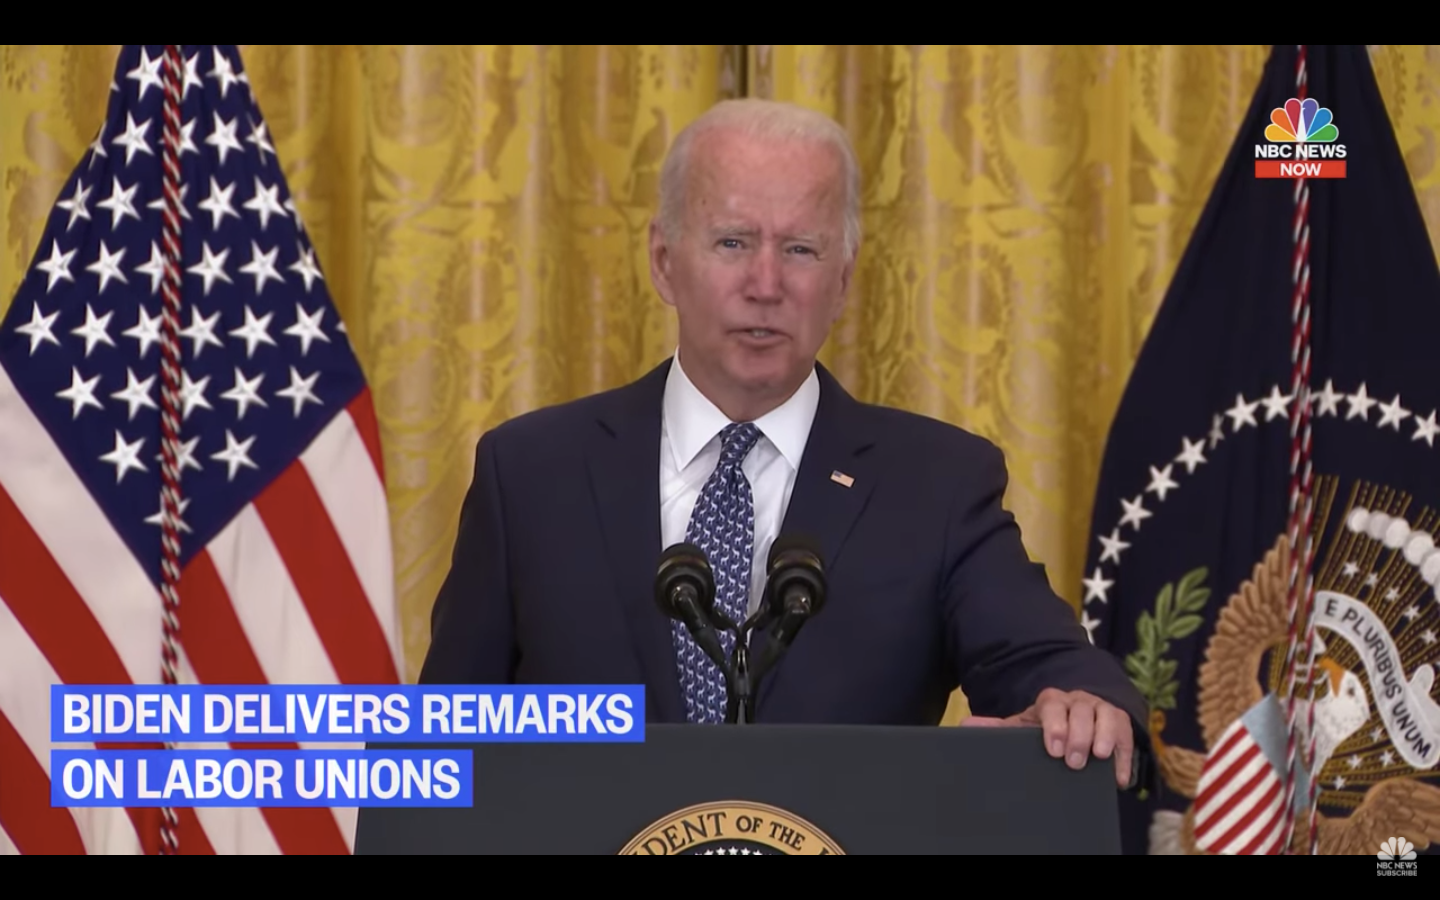 a screenshot of Joe Biden at a presidential podium in front of a US flag and Washington, D.C., flag speaking into a microphone